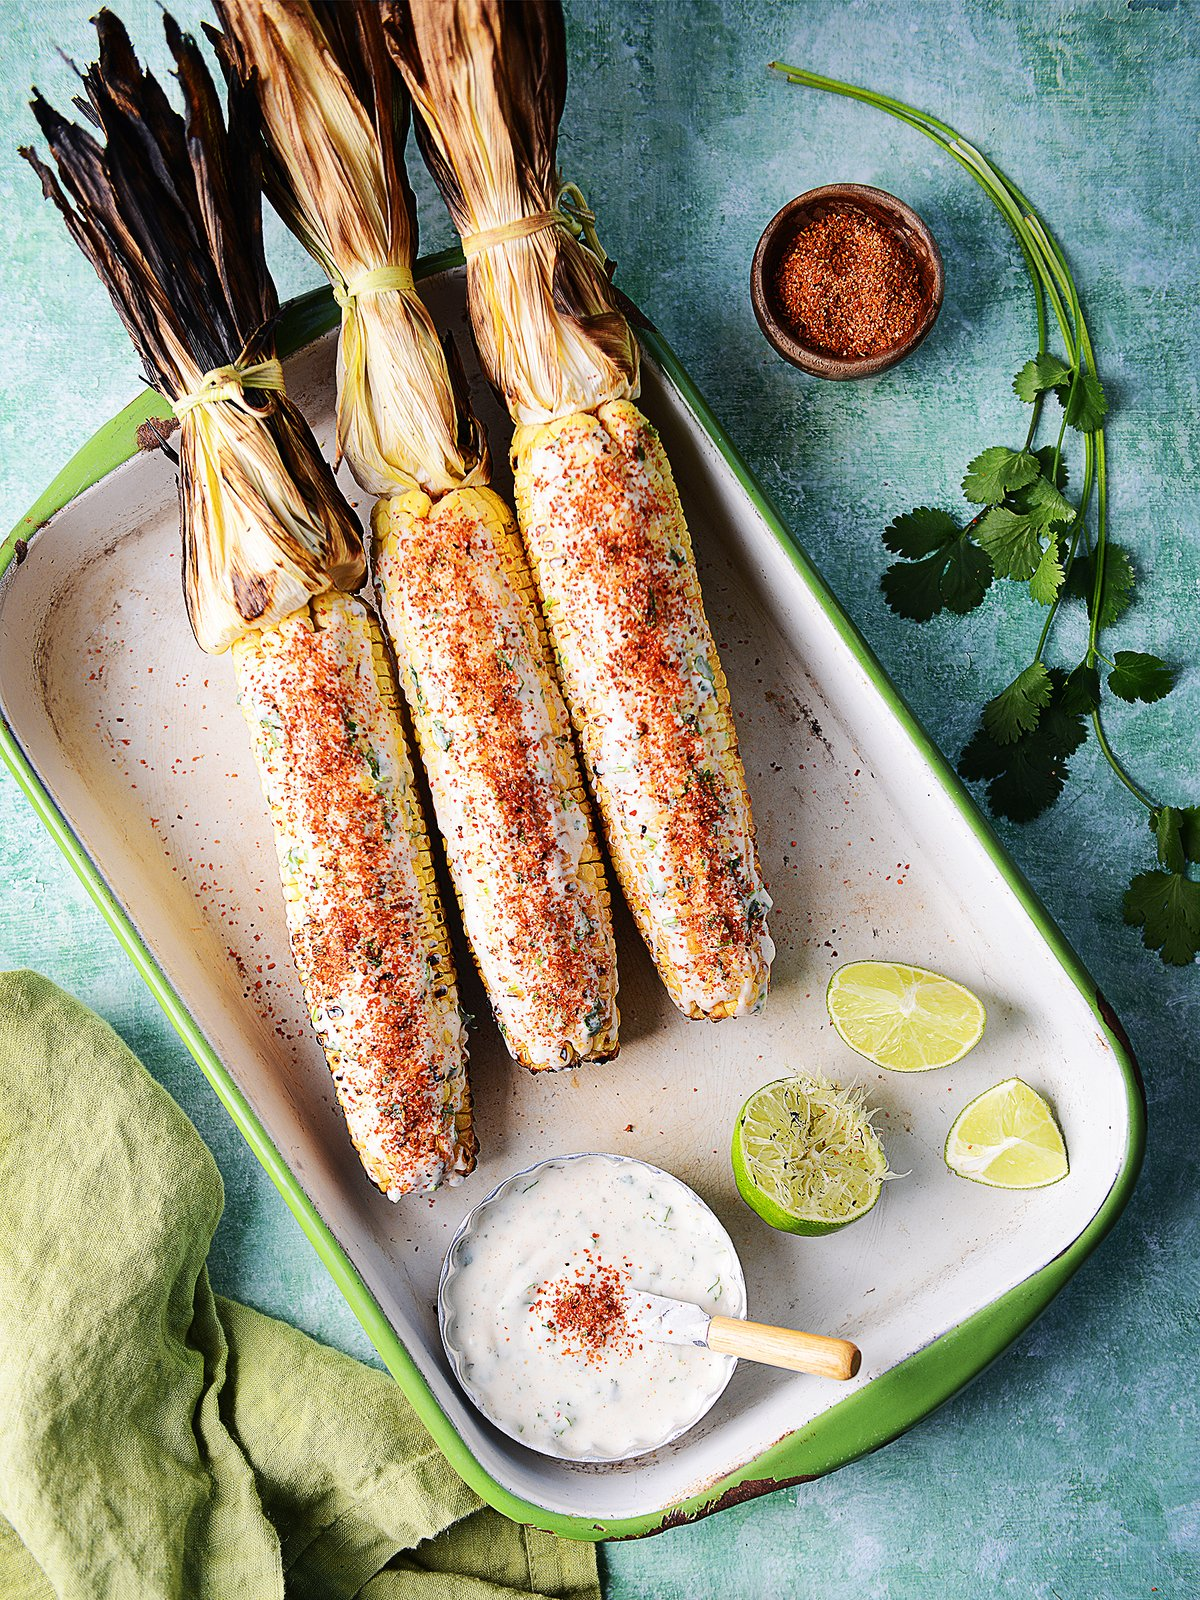 Three Elotes Asados on the cob on a white vintage tray on a green background